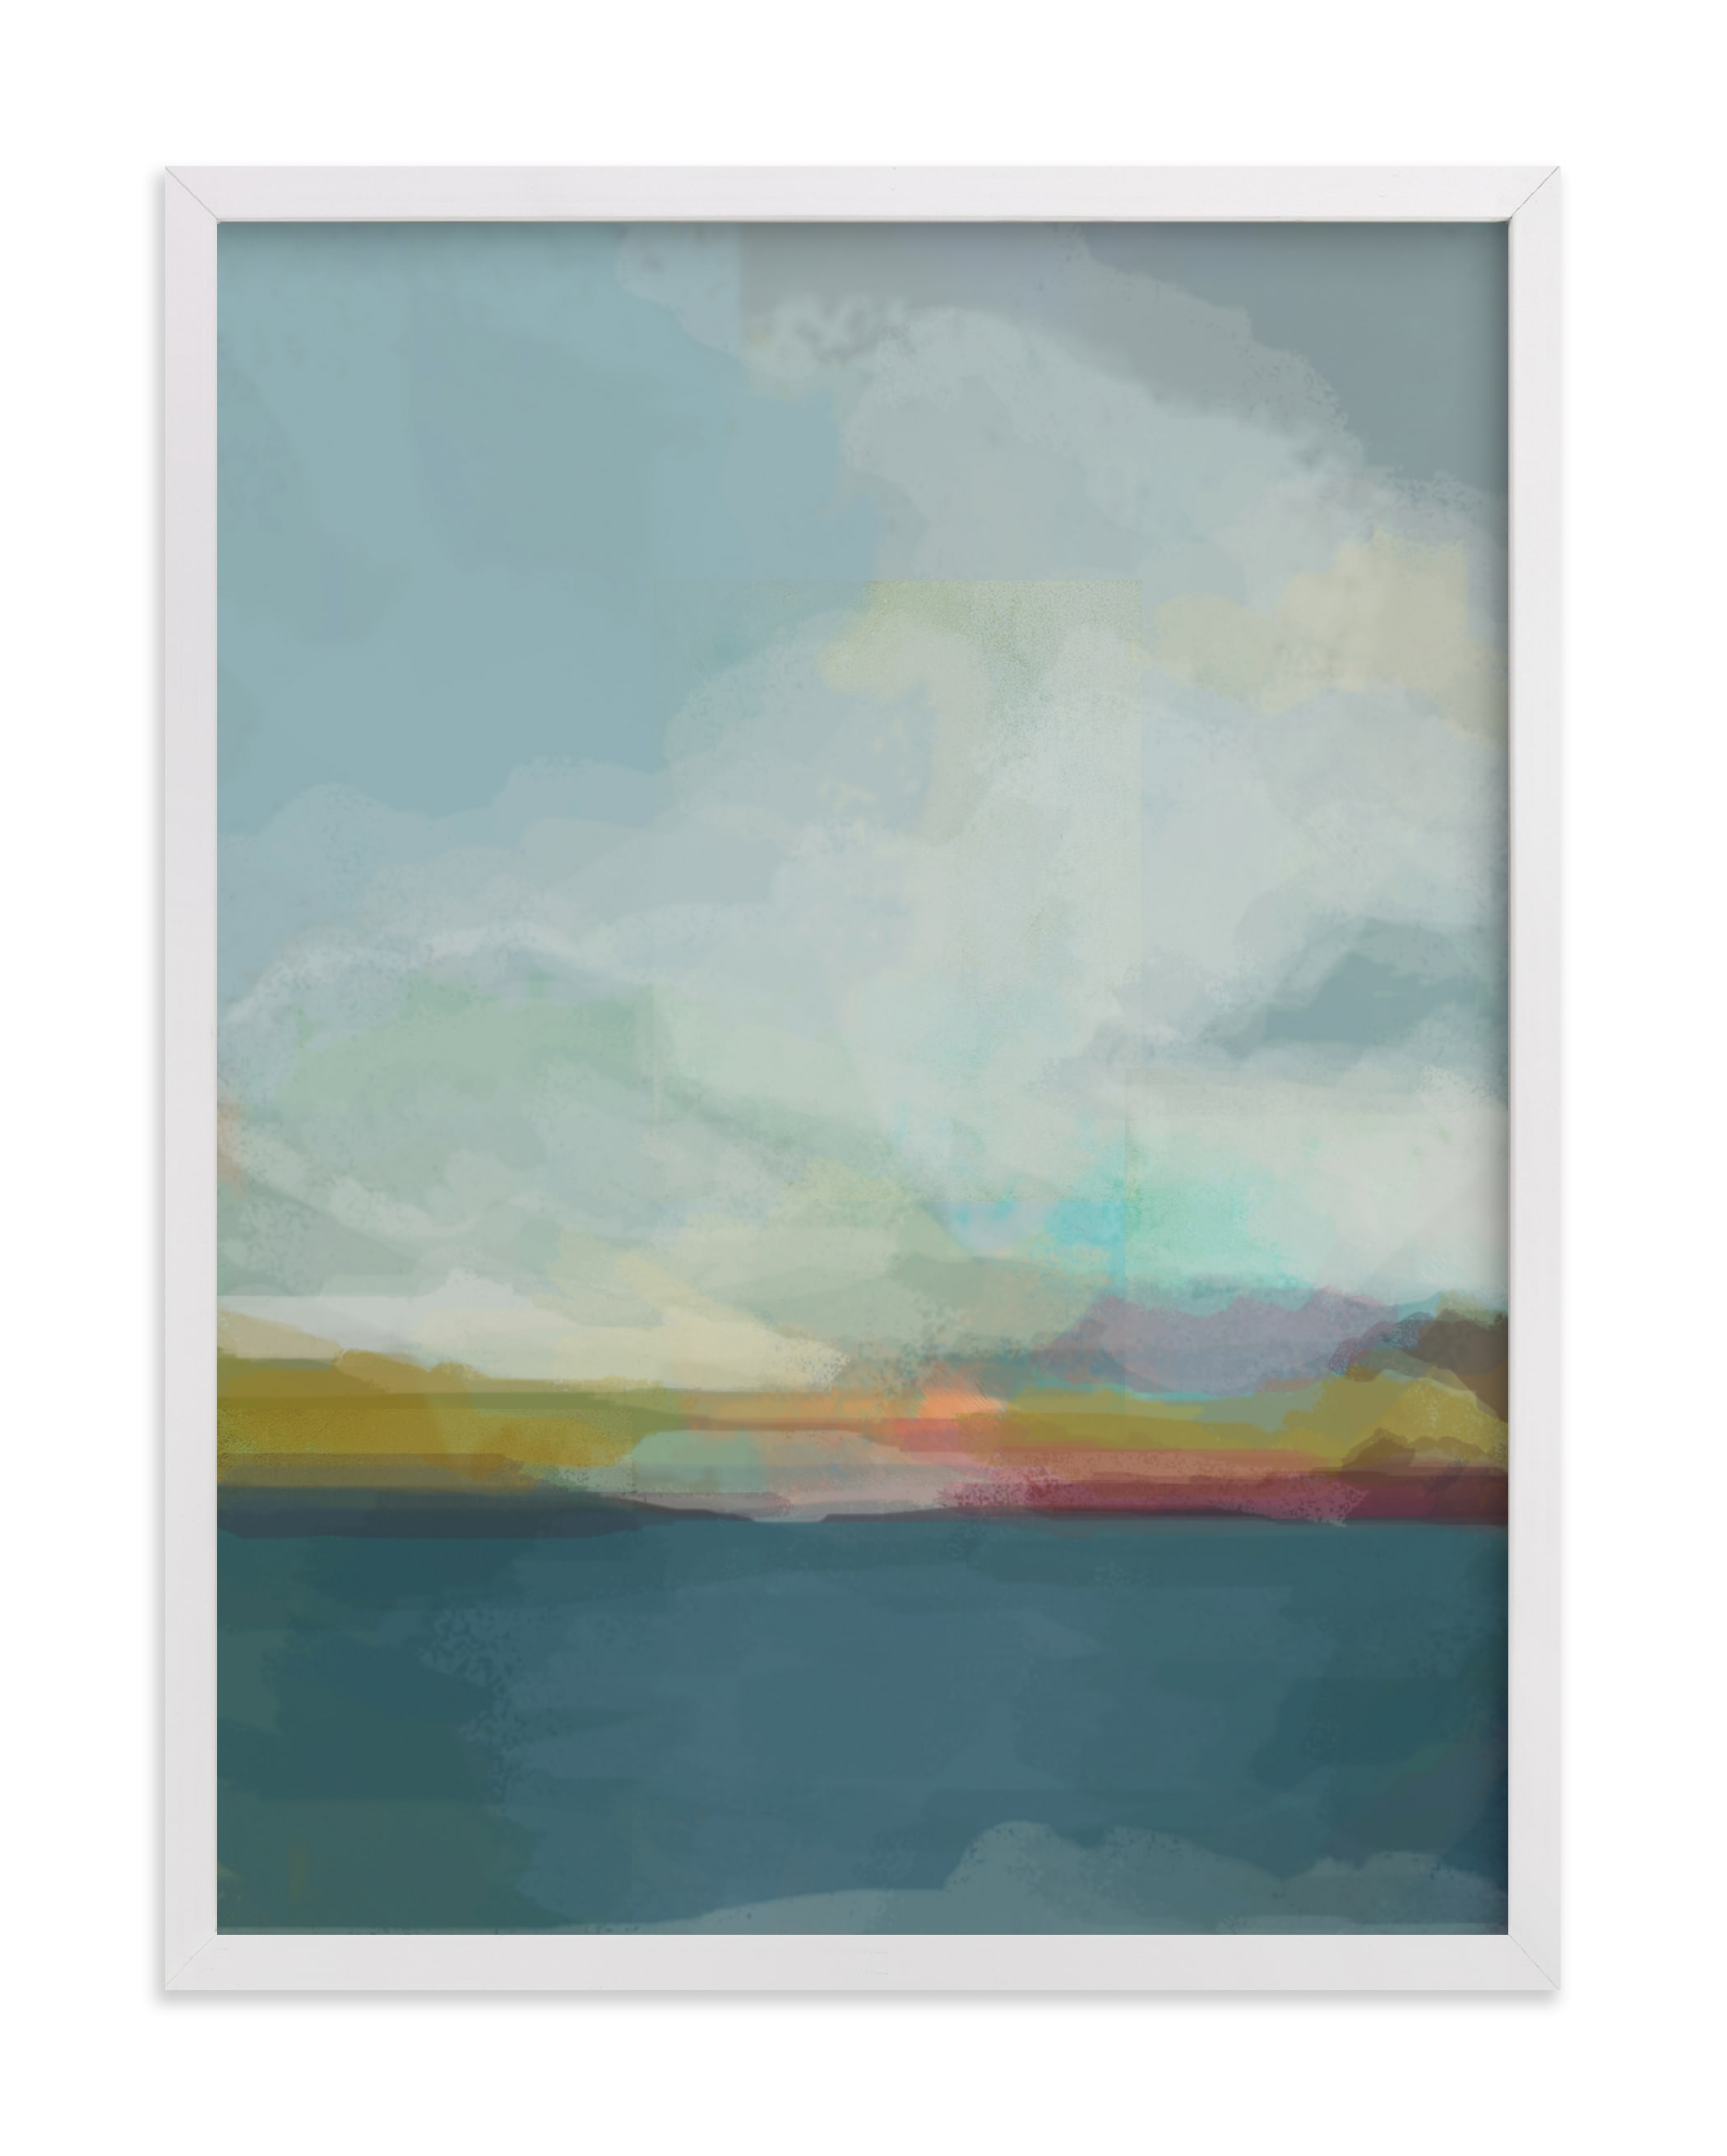 This is a blue art by Alison Jerry Designs called Morning Walk.